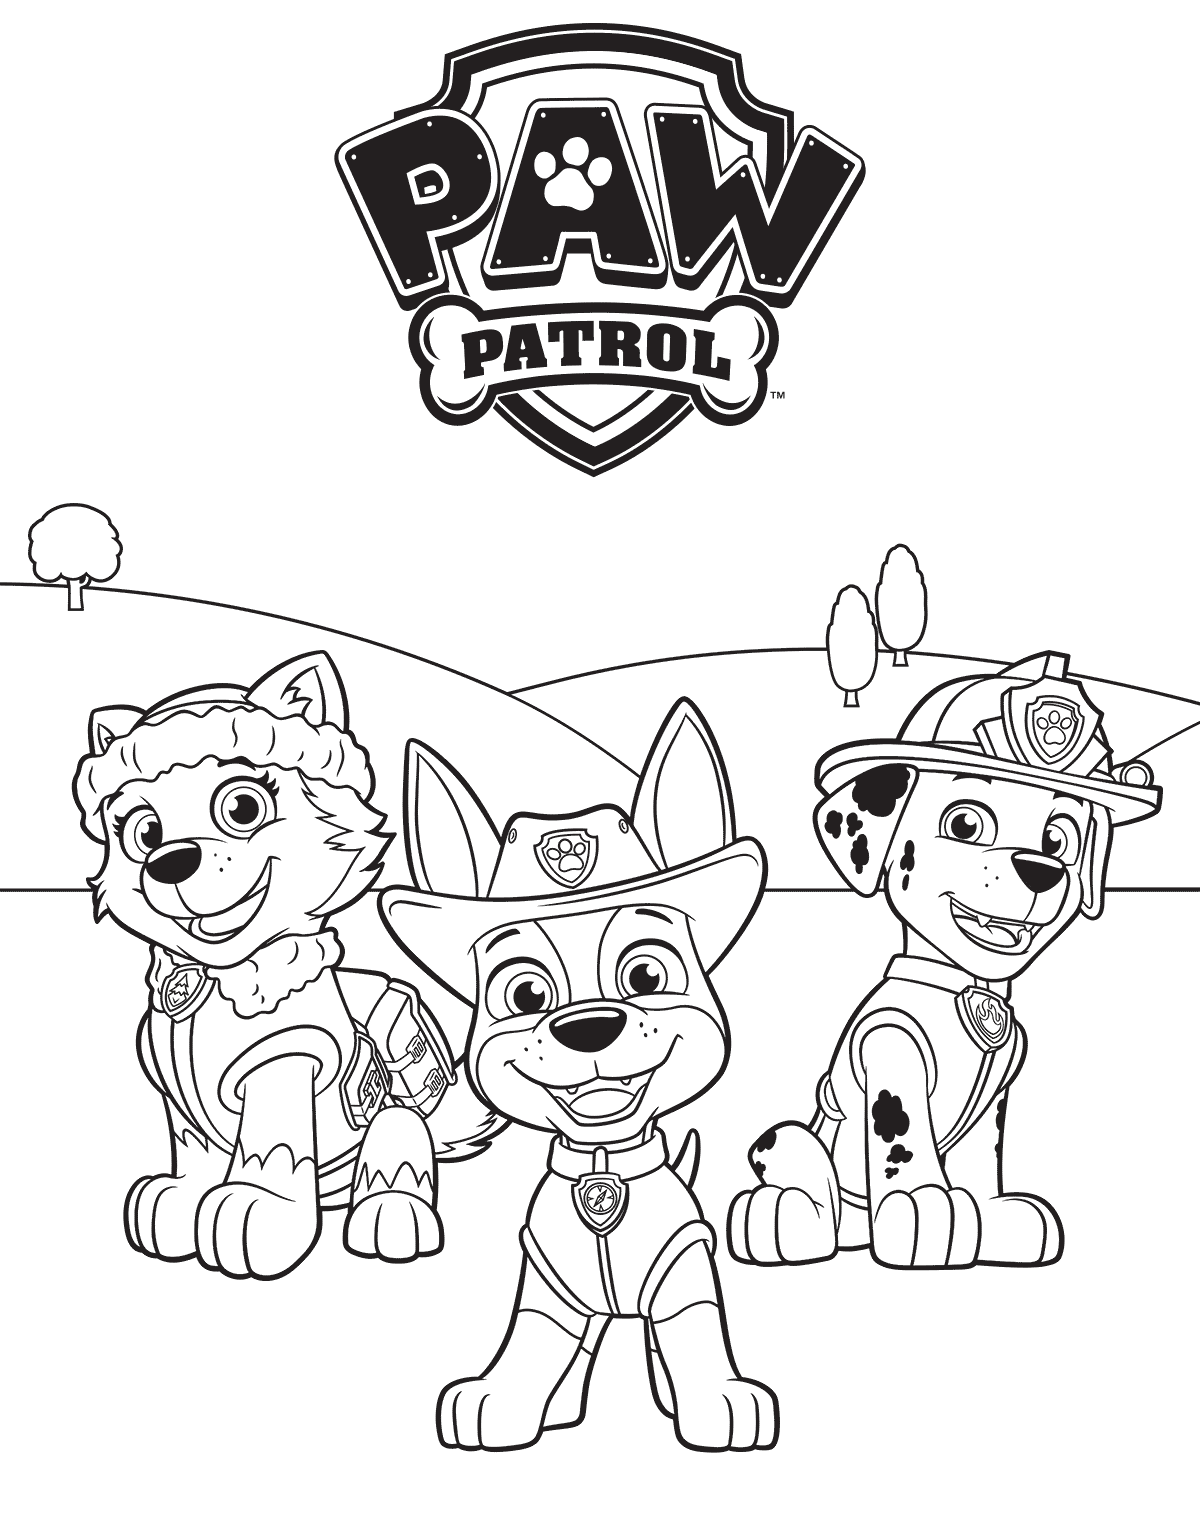 Coloring Rocks Paw Patrol Coloring Pages Paw Patrol Coloring Coloring Pages